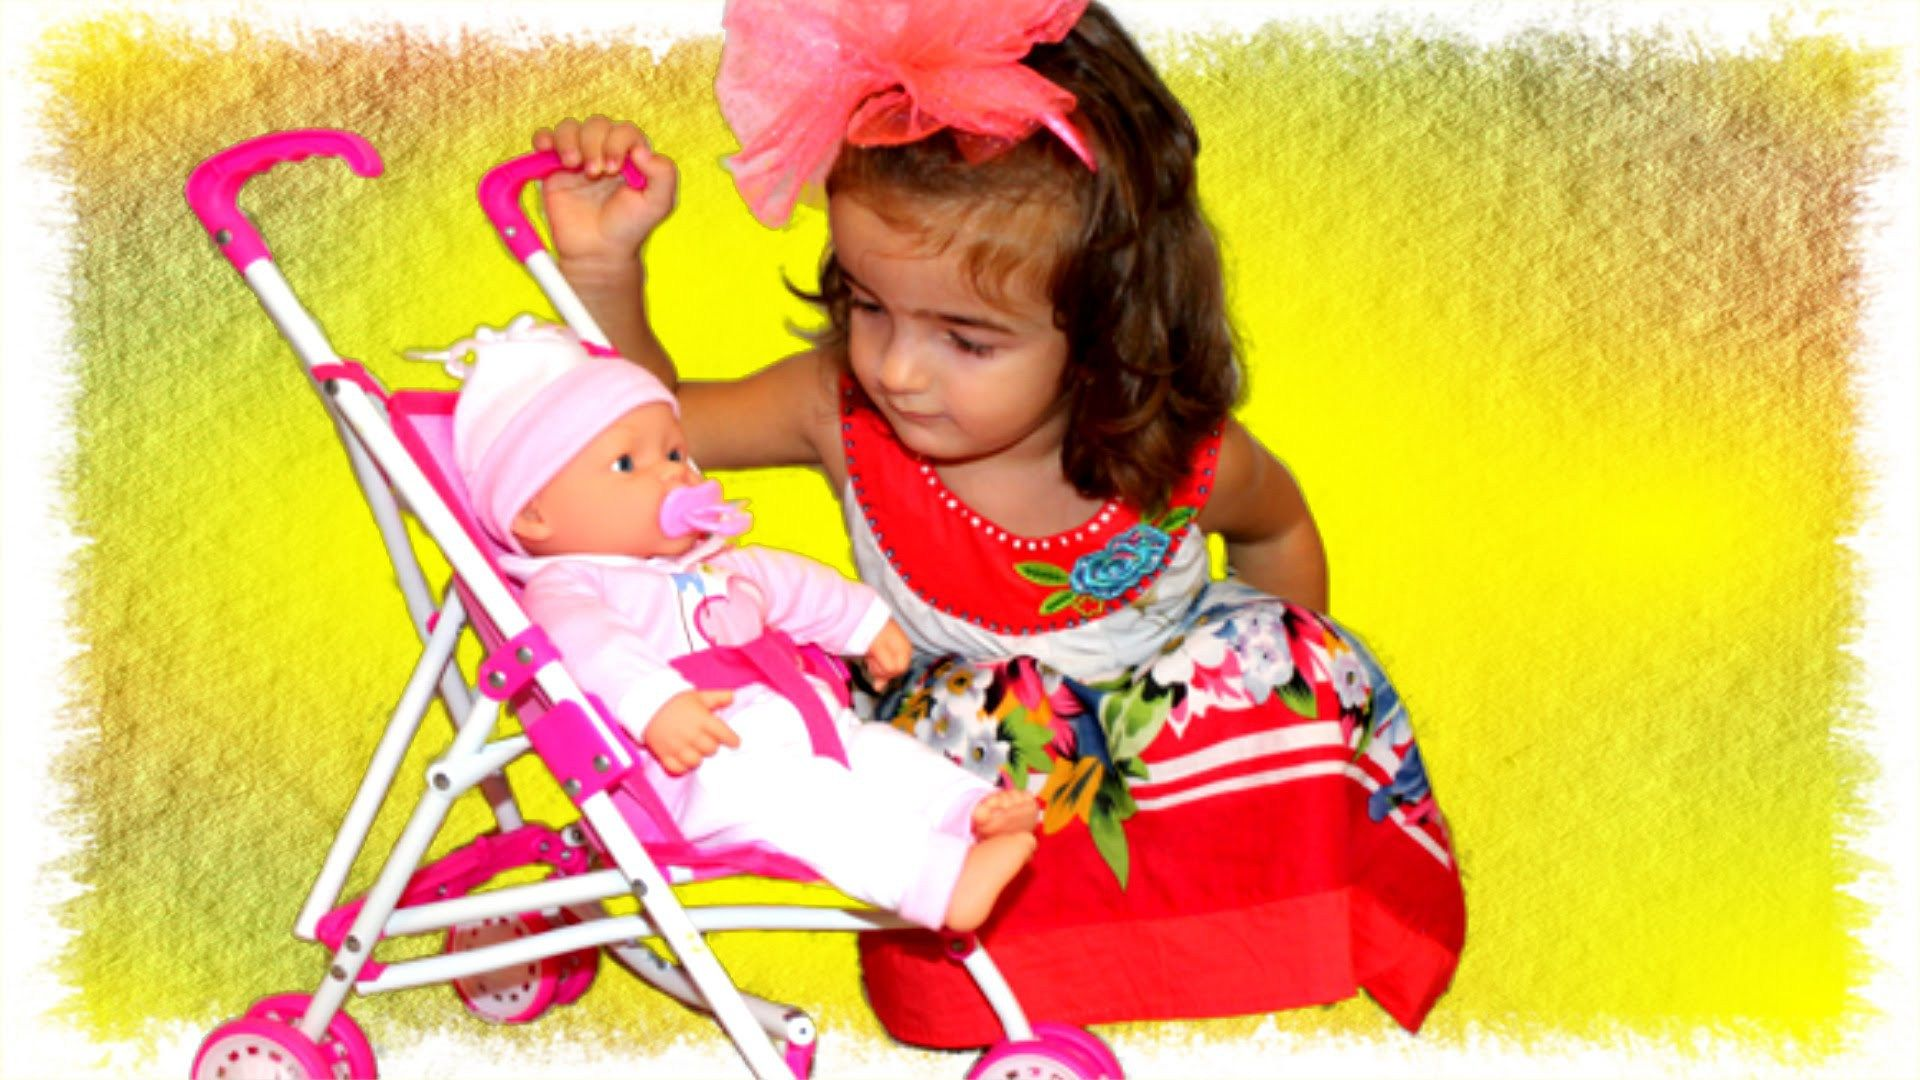 MAIA Baby Doll Stroller Change Diaper Lunch Time Video for